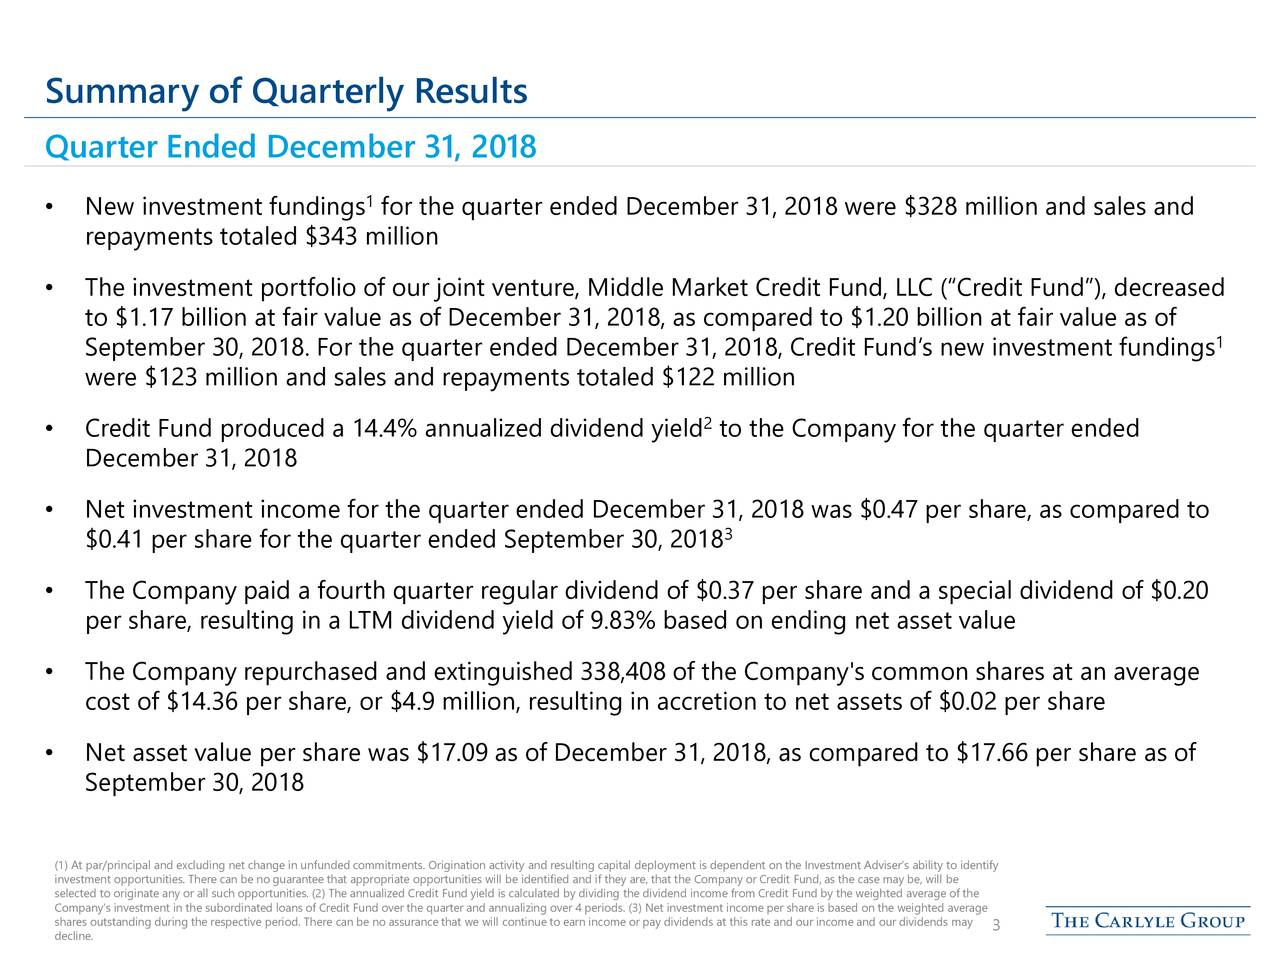 "Quarter Ended December 31, 2018 1 • New investment fundings for the quarter ended December 31, 2018 were $328 million and sales and repayments totaled $343 million • The investment portfolio of our joint venture, Middle Market Credit Fund, LLC (""Credit Fund""), decreased to $1.17 billion at fair value as of December 31, 2018, as compared to $1.20 billion at fair value as of September 30, 2018. For the quarter ended December 31, 2018, Credit Fund's new investment fundings 1 were $123 million and sales and repayments totaled $122 million • Credit Fund produced a 14.4% annualized dividend yield to the Company for the quarter ended December 31, 2018 • Net investment income for the quarter ended December 31, 2018 was $0.47 per share, as compared to $0.41 per share for the quarter ended September 30, 2018 3 • The Company paid a fourth quarter regular dividend of $0.37 per share and a special dividend of $0.20 per share, resulting in a LTM dividend yield of 9.83% based on ending net asset value • The Company repurchased and extinguished 338,408 of the Company's common shares at an average cost of $14.36 per share, or $4.9 million, resulting in accretion to net assets of $0.02 per share • Net asset value per share was $17.09 as of December 31, 2018, as compared to $17.66 per share as of September 30, 2018 investment opportunities. There can be no guarantee that appropriate opportunities will be identified and if they are, that t he Company or Credit Fund, as the case may be, will bentify selected to originate any or all such opportunities. (2) The annualized Credit Fund yield is calculated by dividing the dividend income from Credit Fund by the weighted average of the shares outstanding during the respective period. There can be no assurance that we will continue to earn income or pay dividends at this rate and our income and our dividends mayge decline. 3"